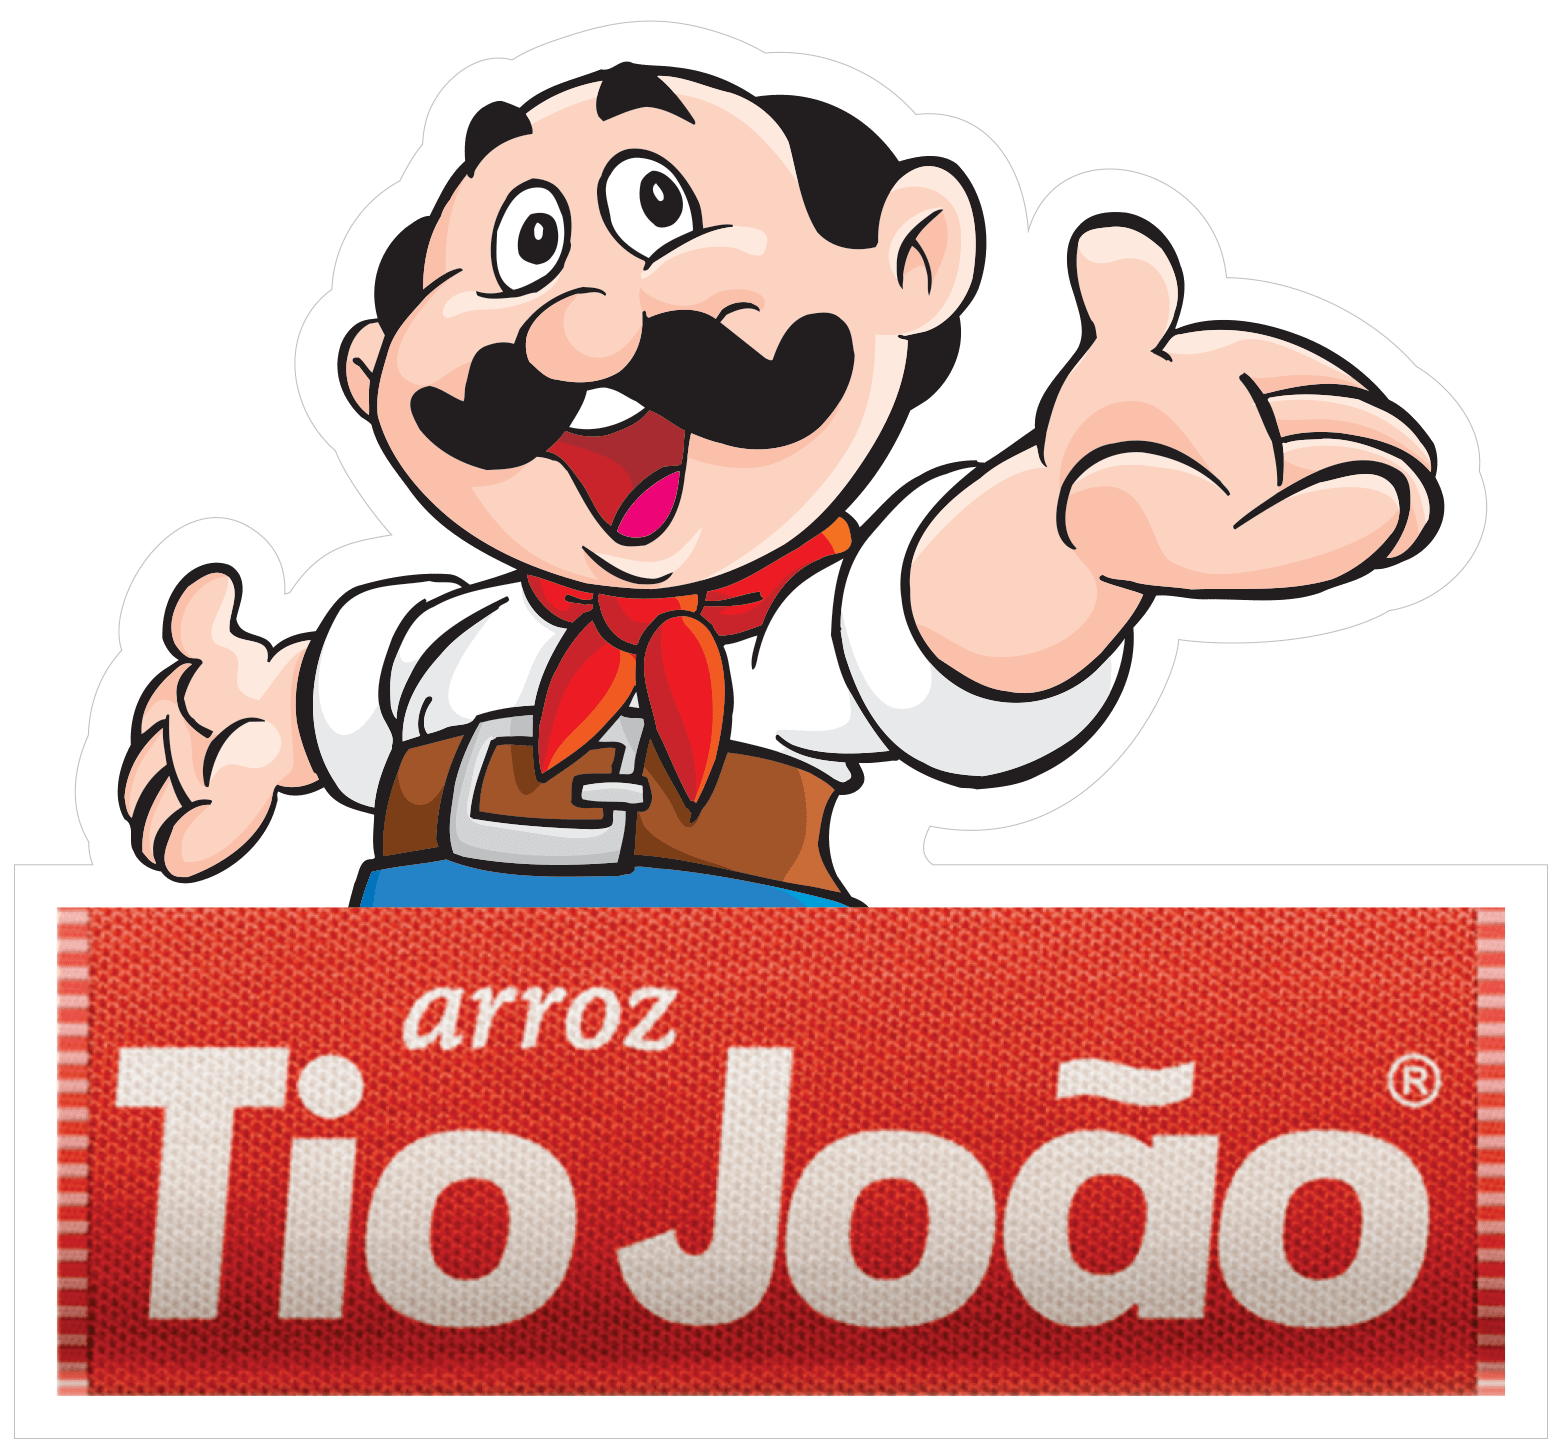 logotipo do tio joão